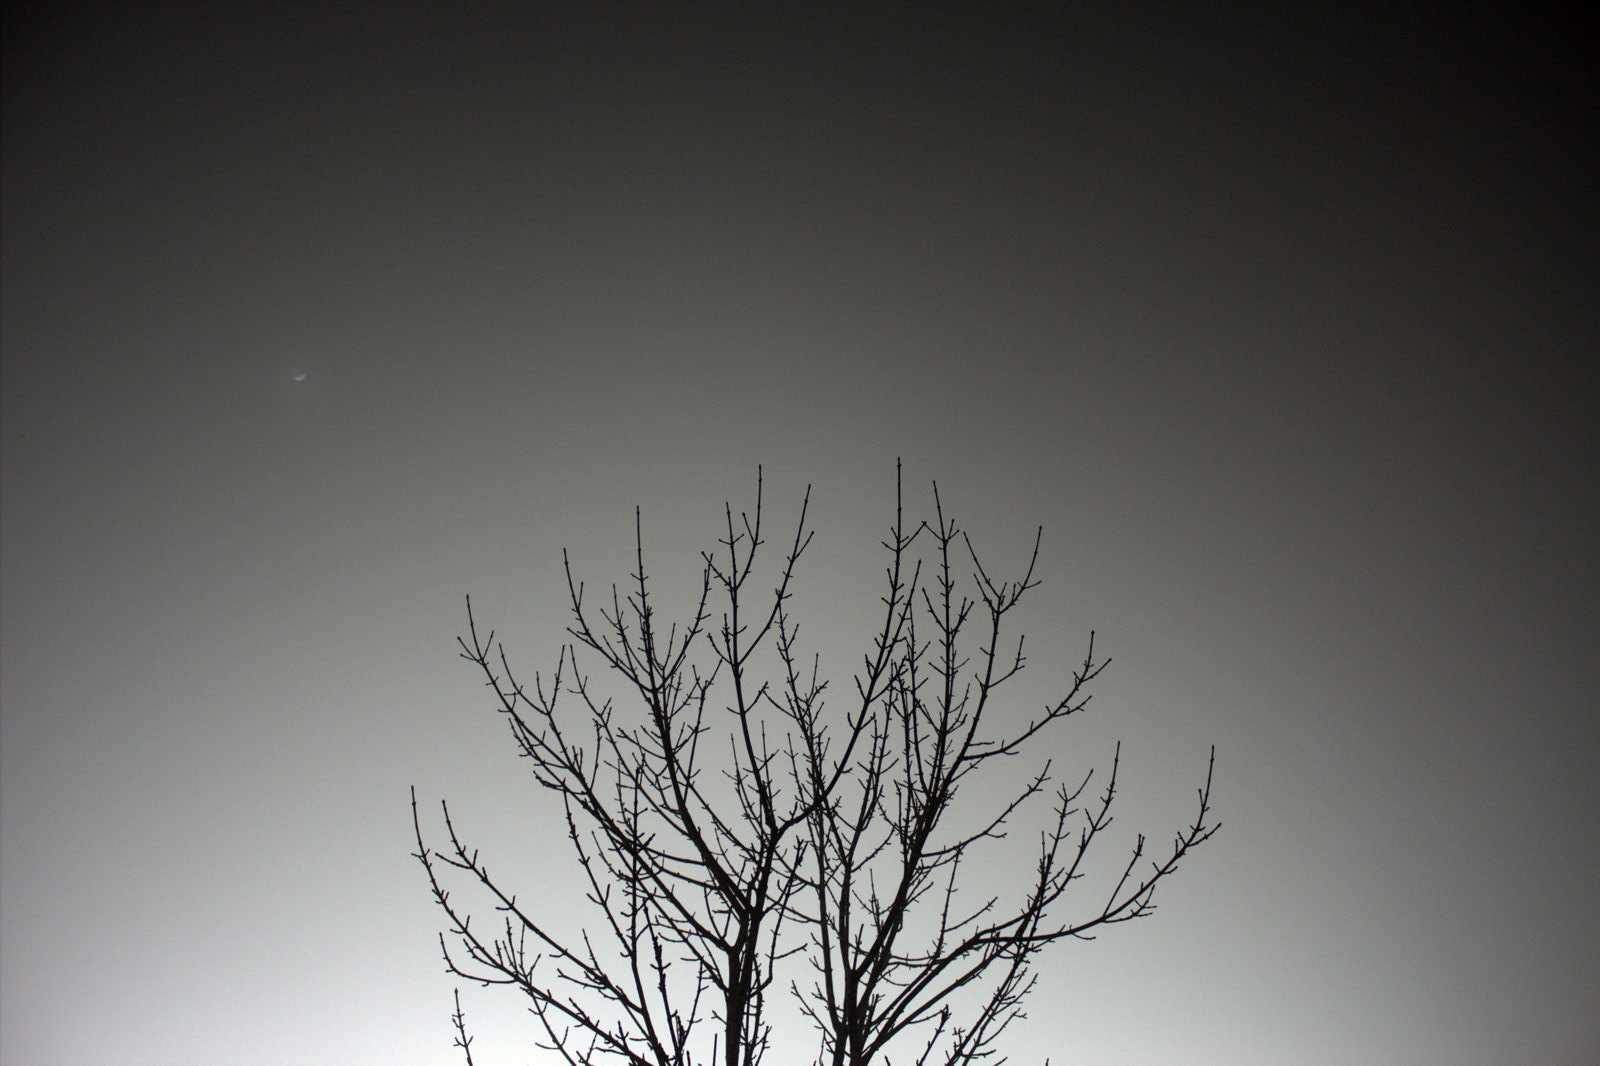 Photograph Tree in a Foggy night by MC Au on 500px